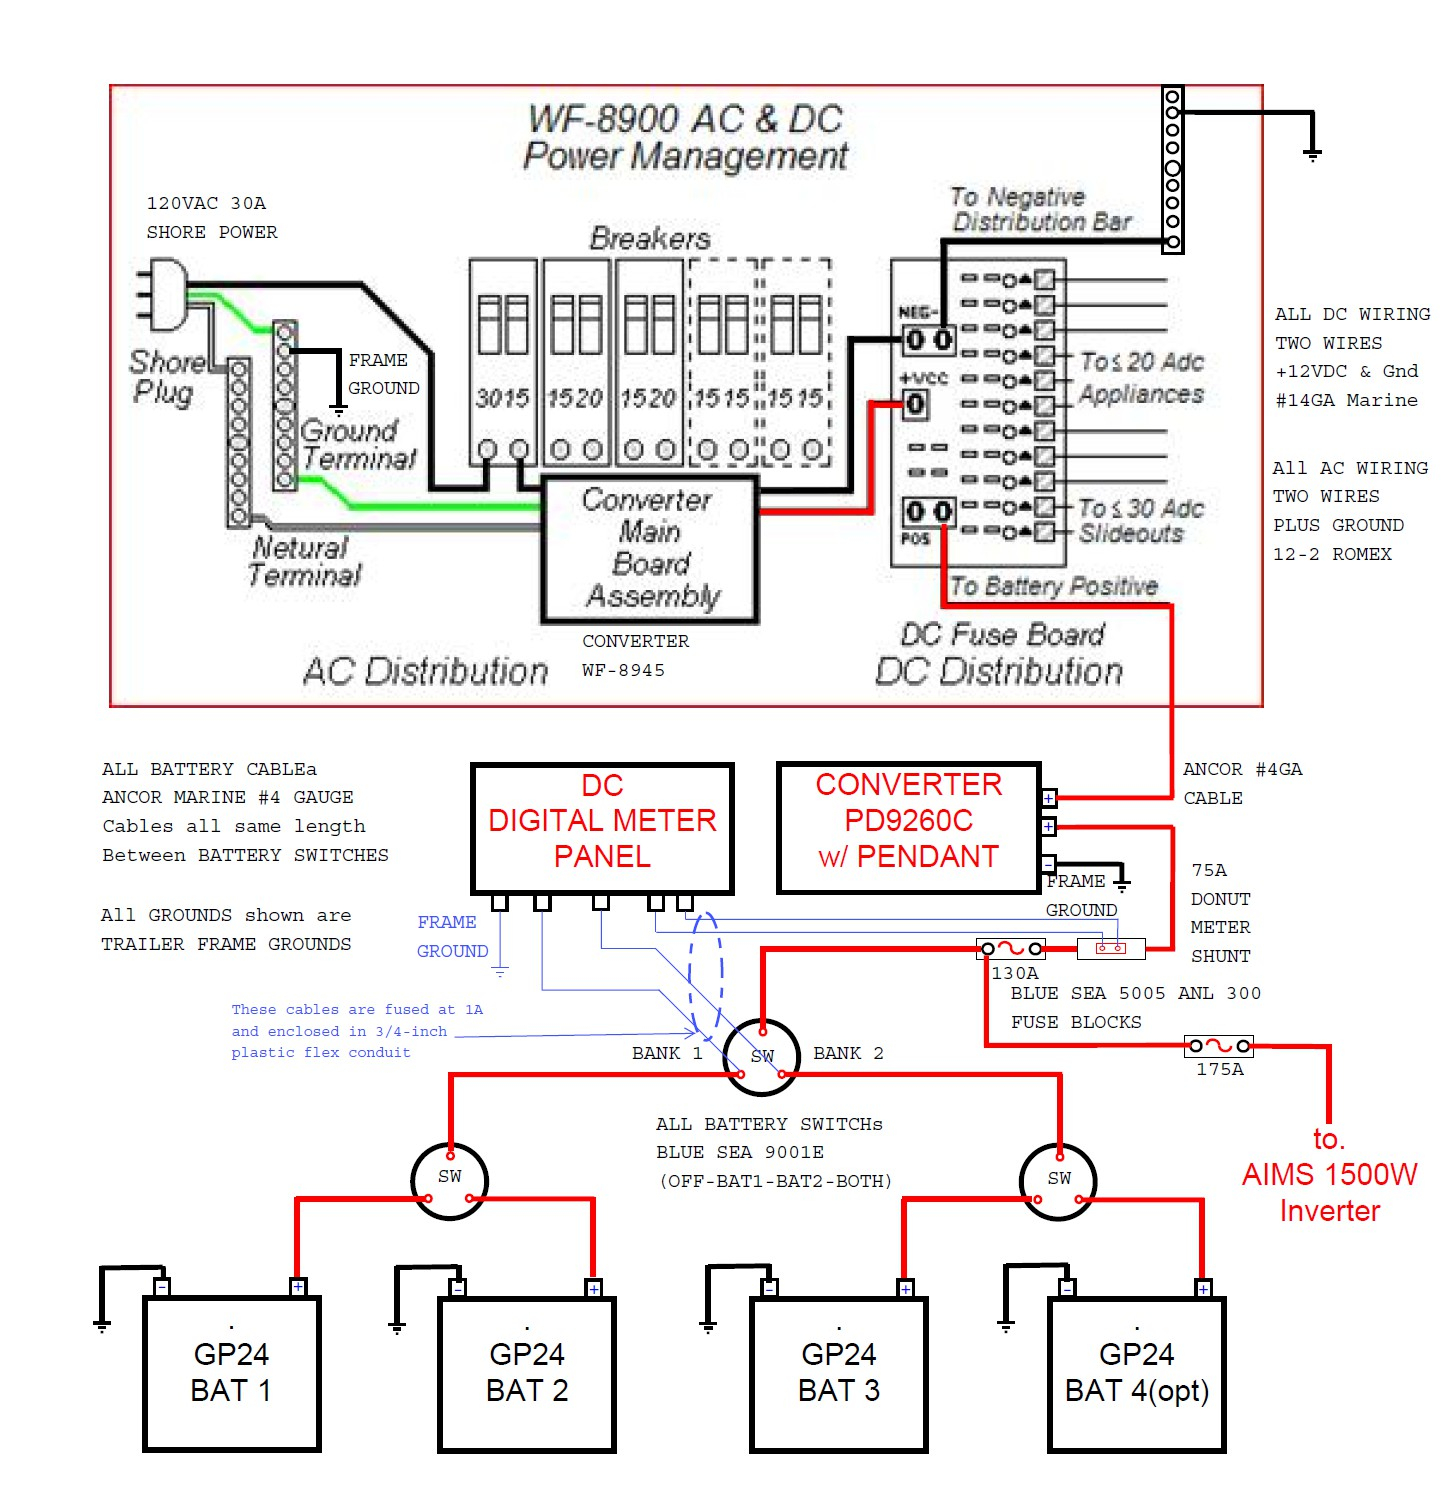 New Magnetek Power Converter 6345 Wiring Diagram Wiring Diagram Full Hd Version Wiring Diagram